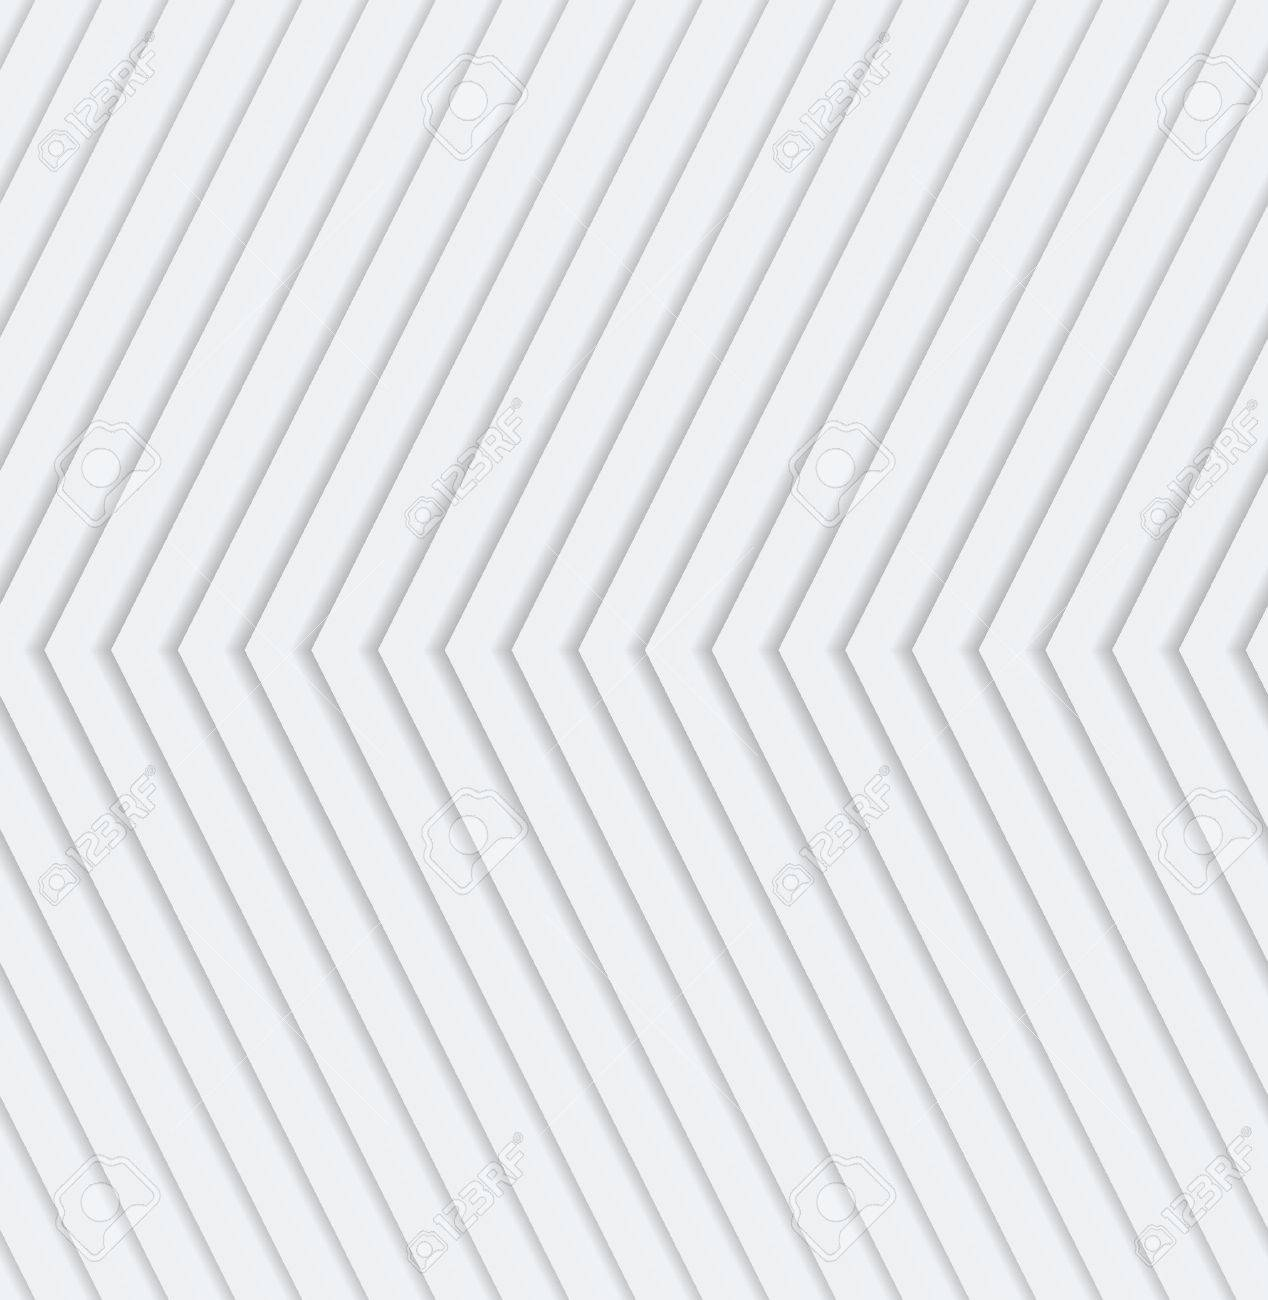 abstract geometric white lines background. vector - 53408623